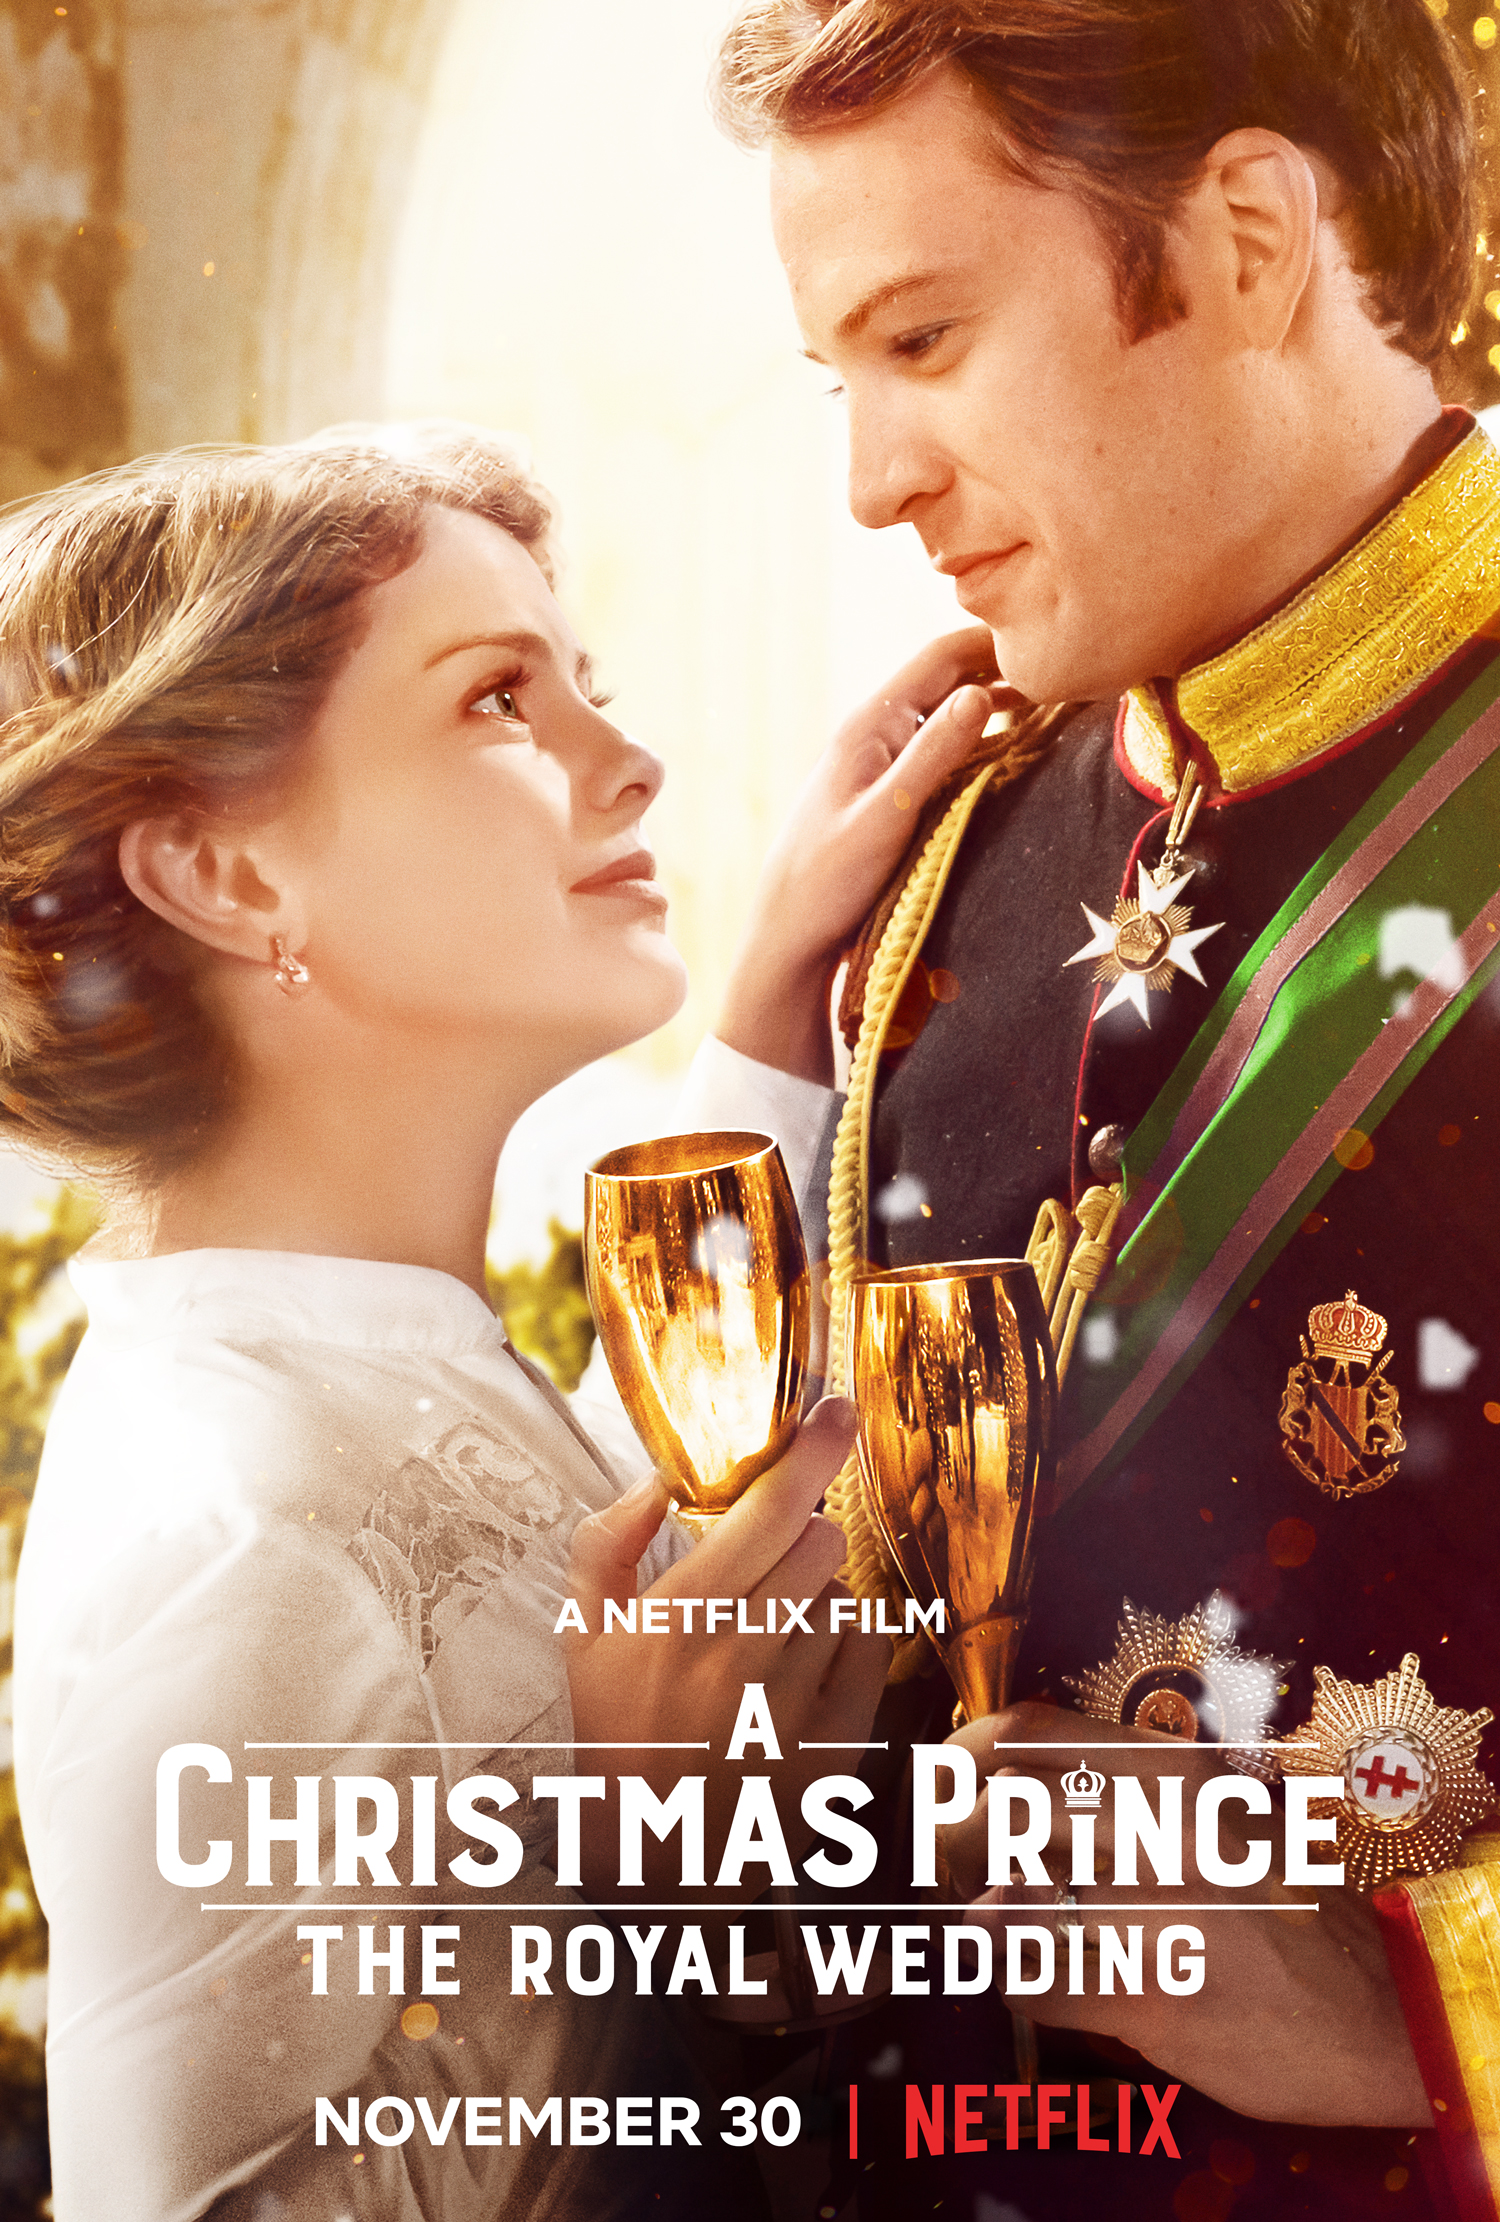 A Christmas Kiss Cast.A Christmas Prince The Royal Wedding 2018 Imdb